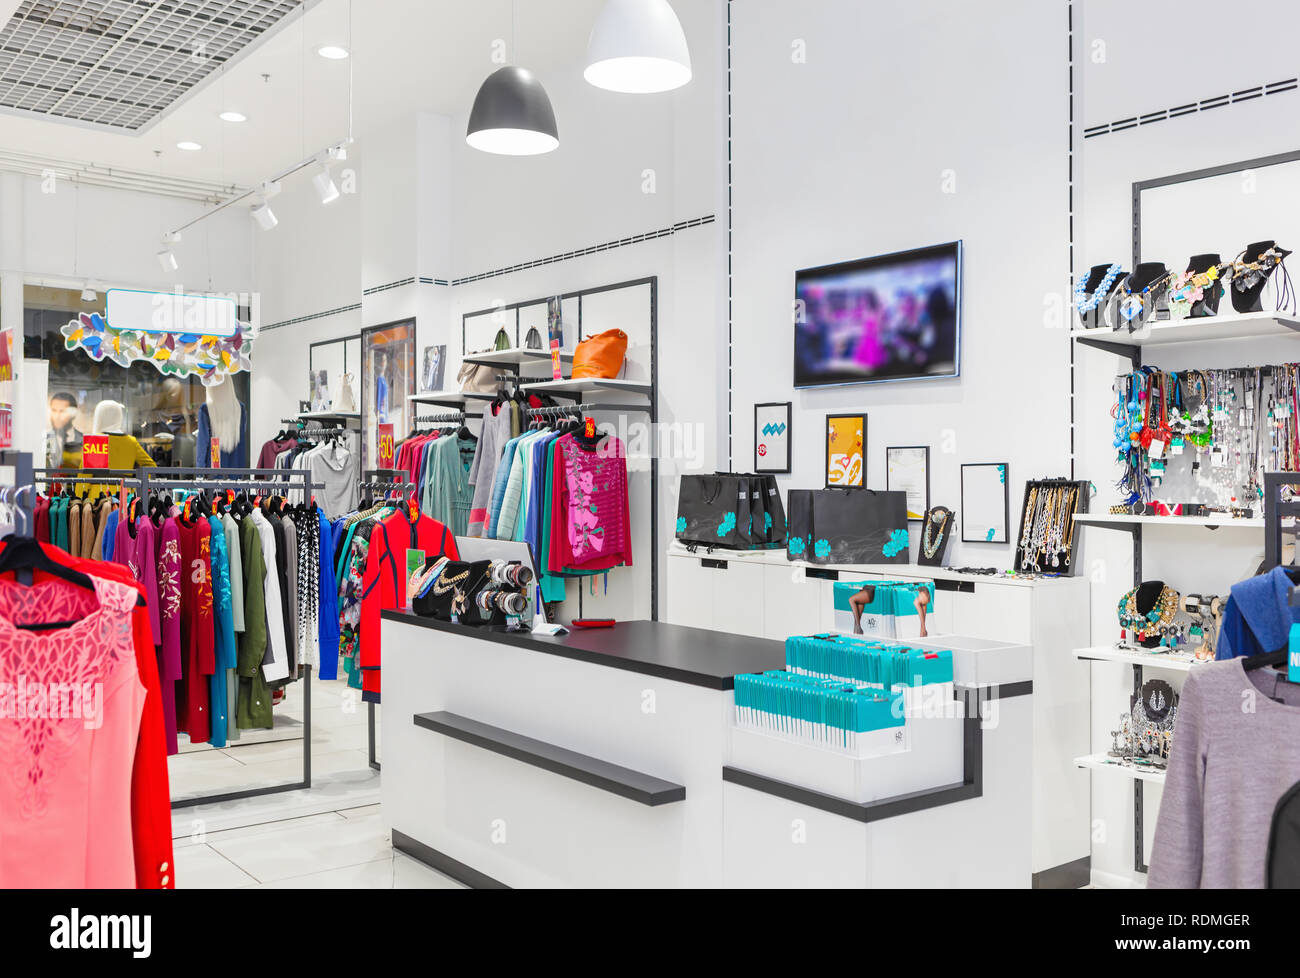 8c64ae1b4b8 Interior of fashion clothing store for women Stock Photo: 232177311 ...